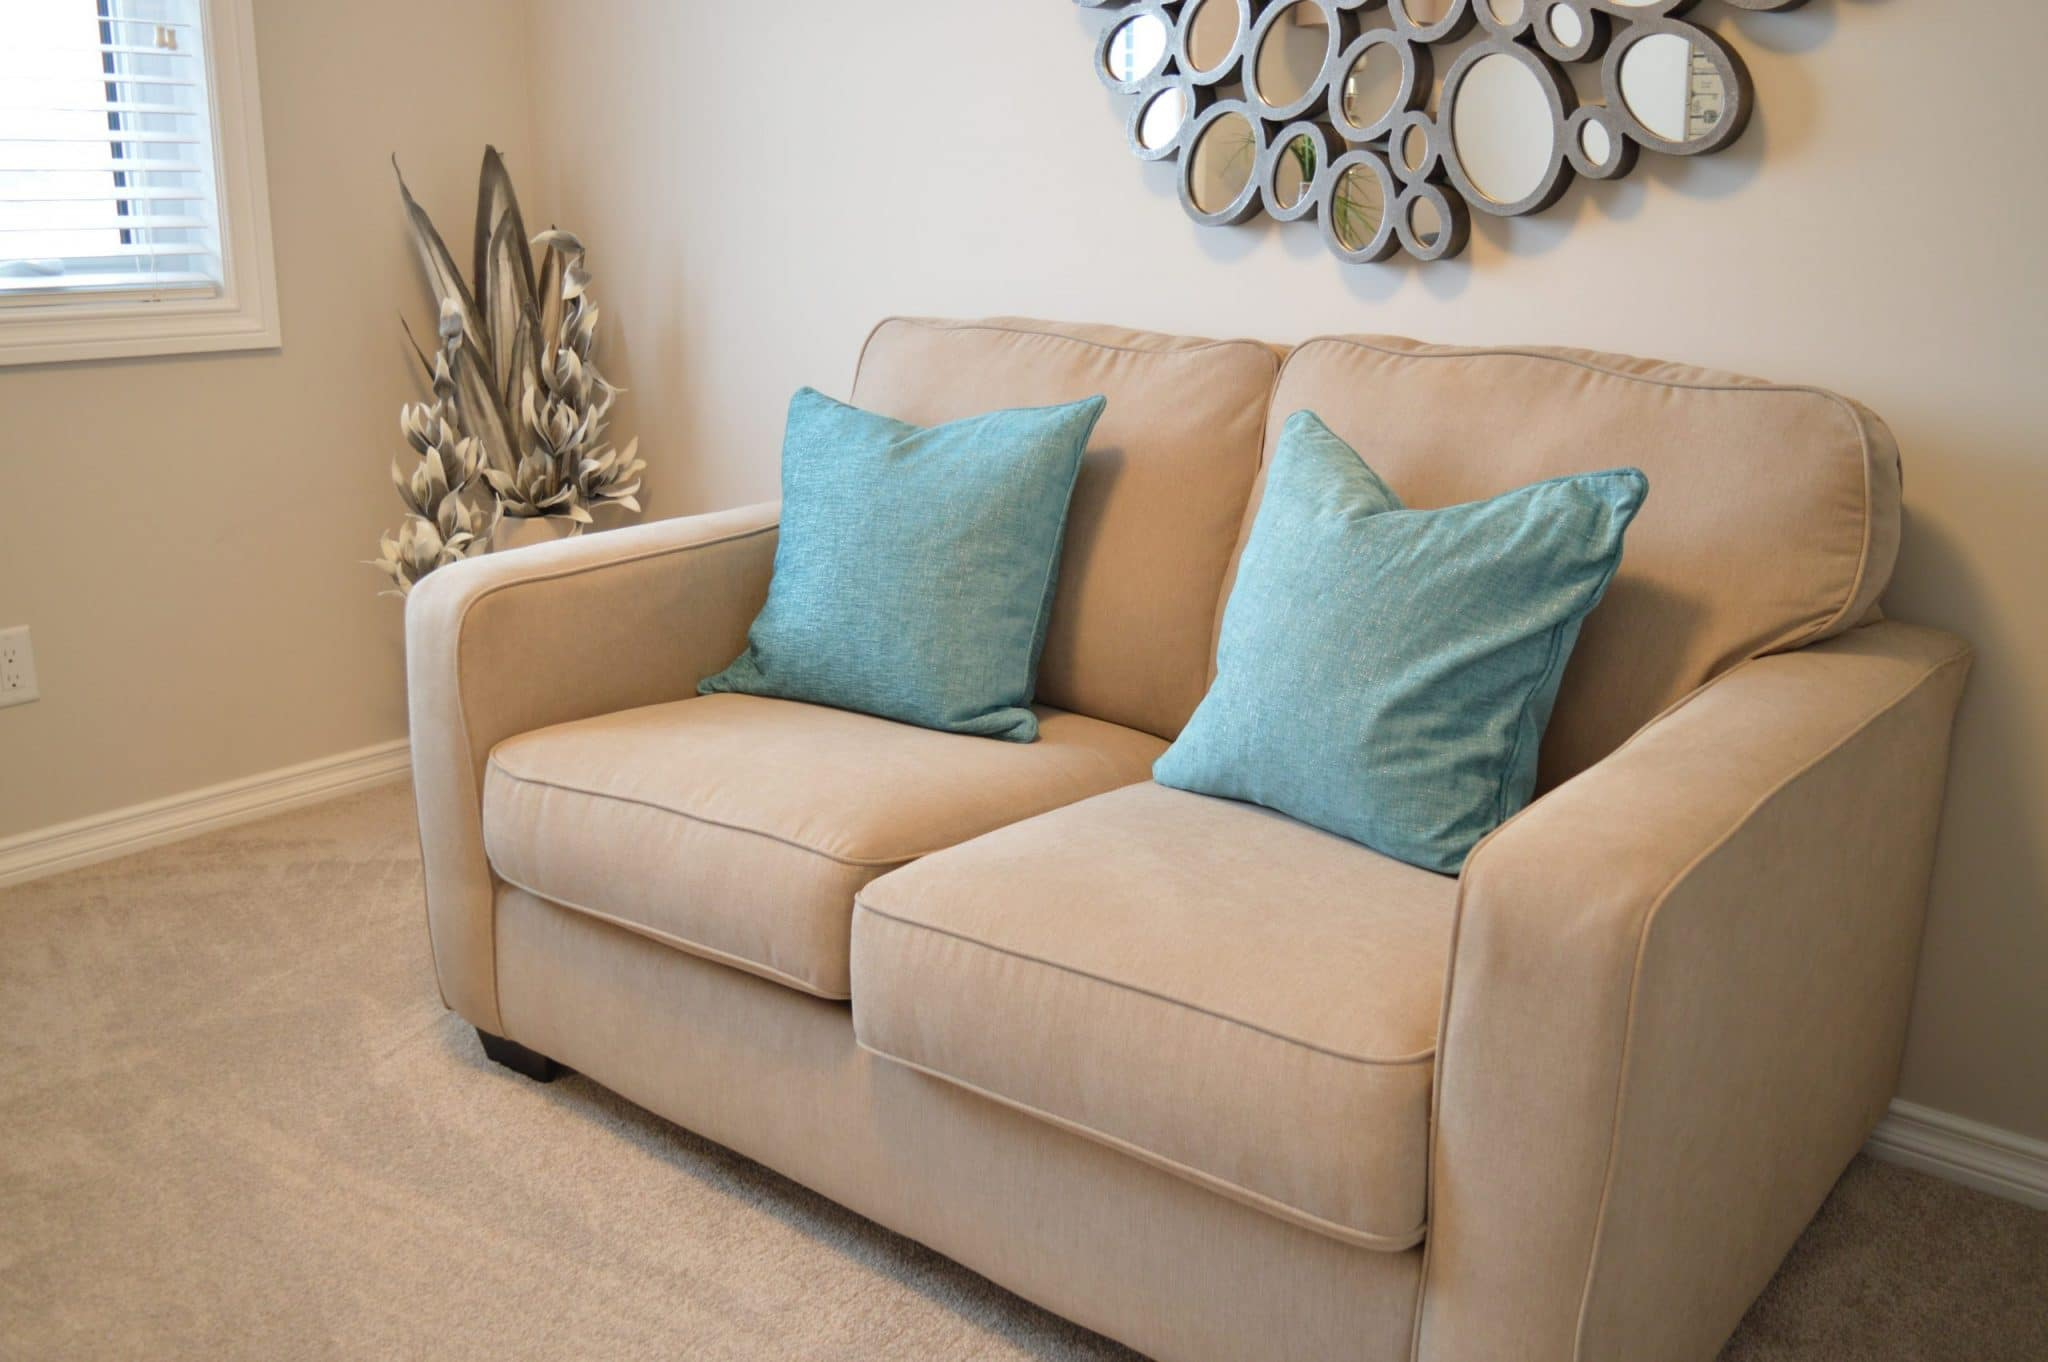 cleaning chairs and furniture, upholstered chair cleaning services, professional furniture cleaning